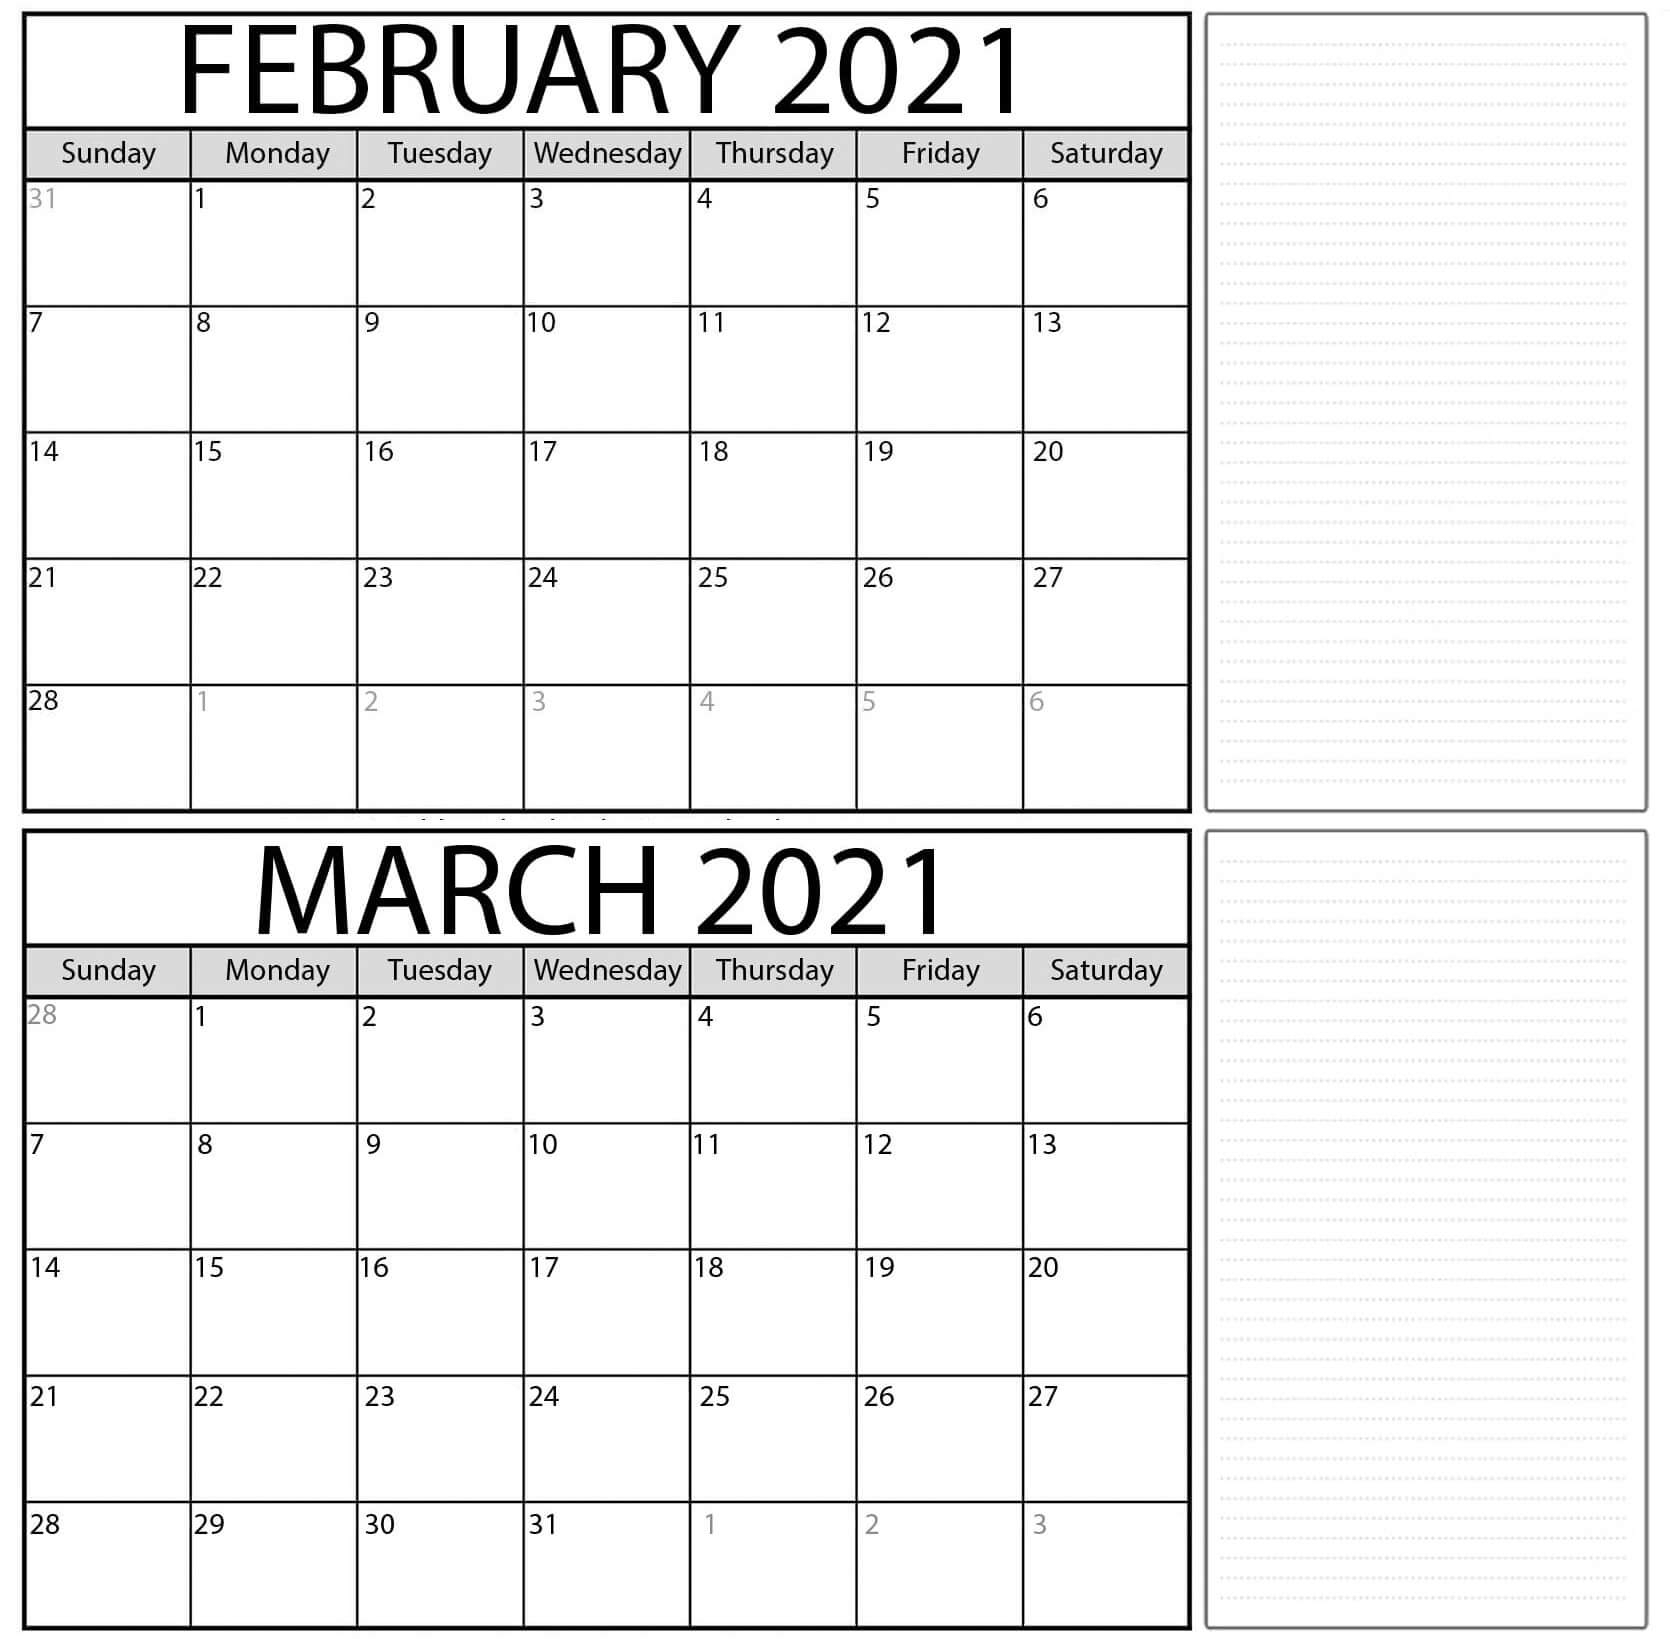 Blank February March 2021 Calendar Word With Notes - Web